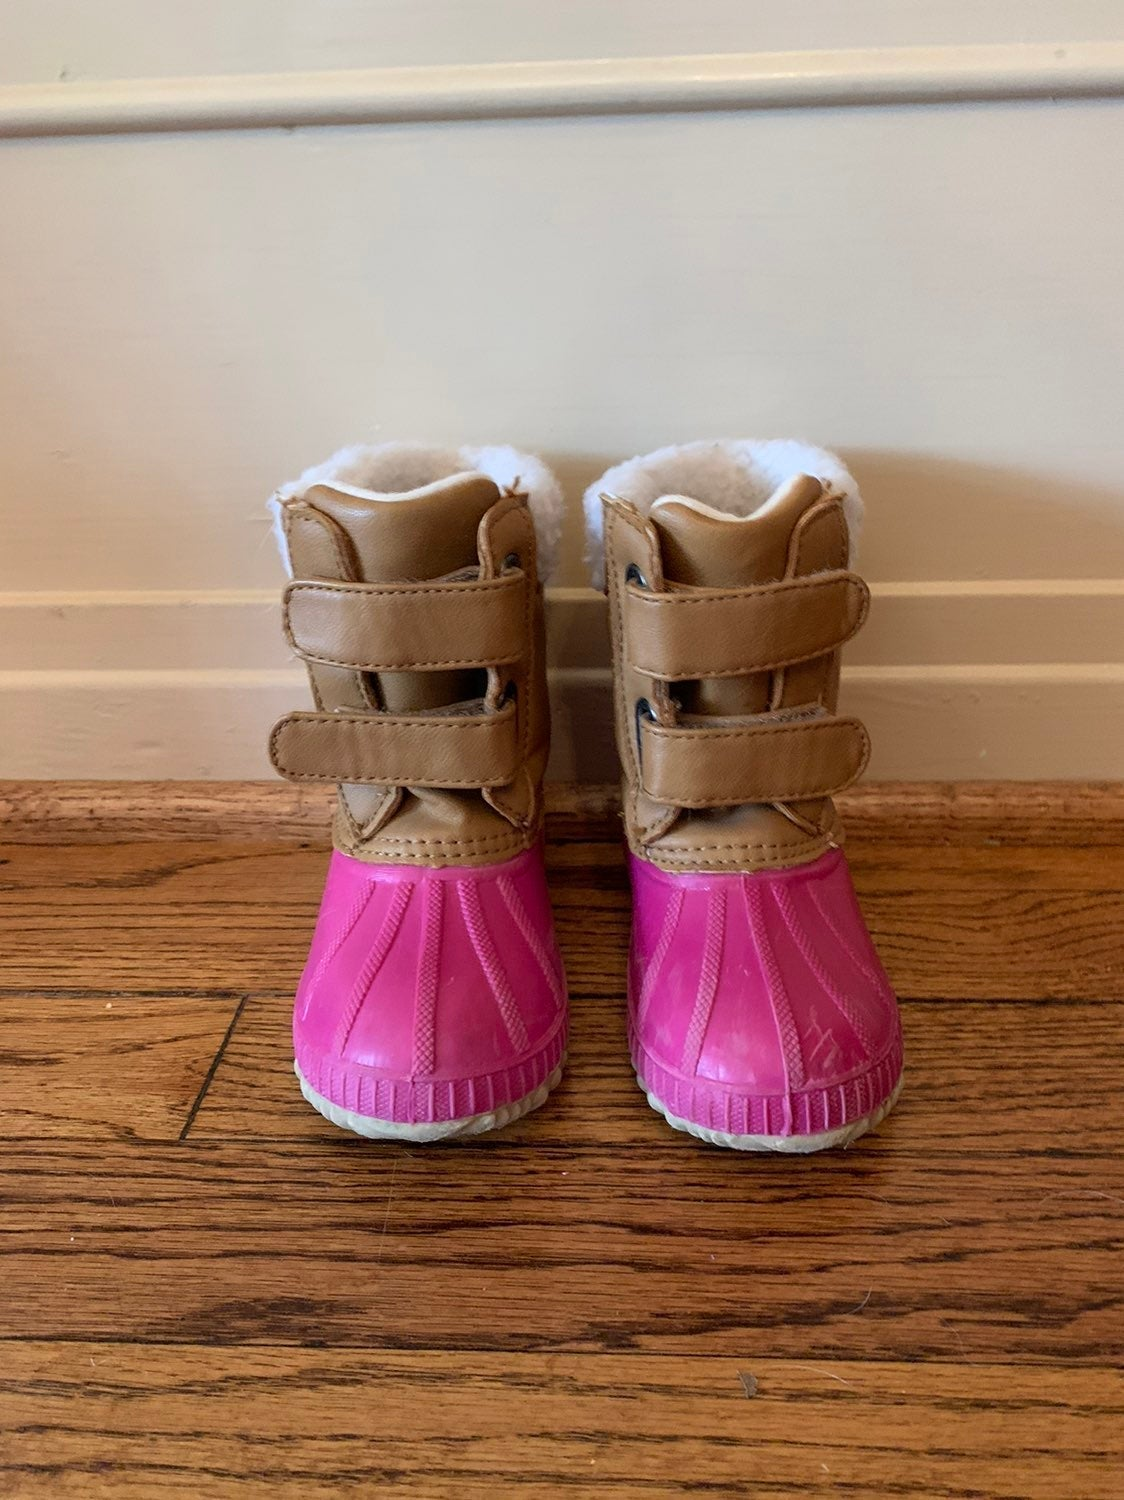 Gap toddler duck boots - pink 7T/8T